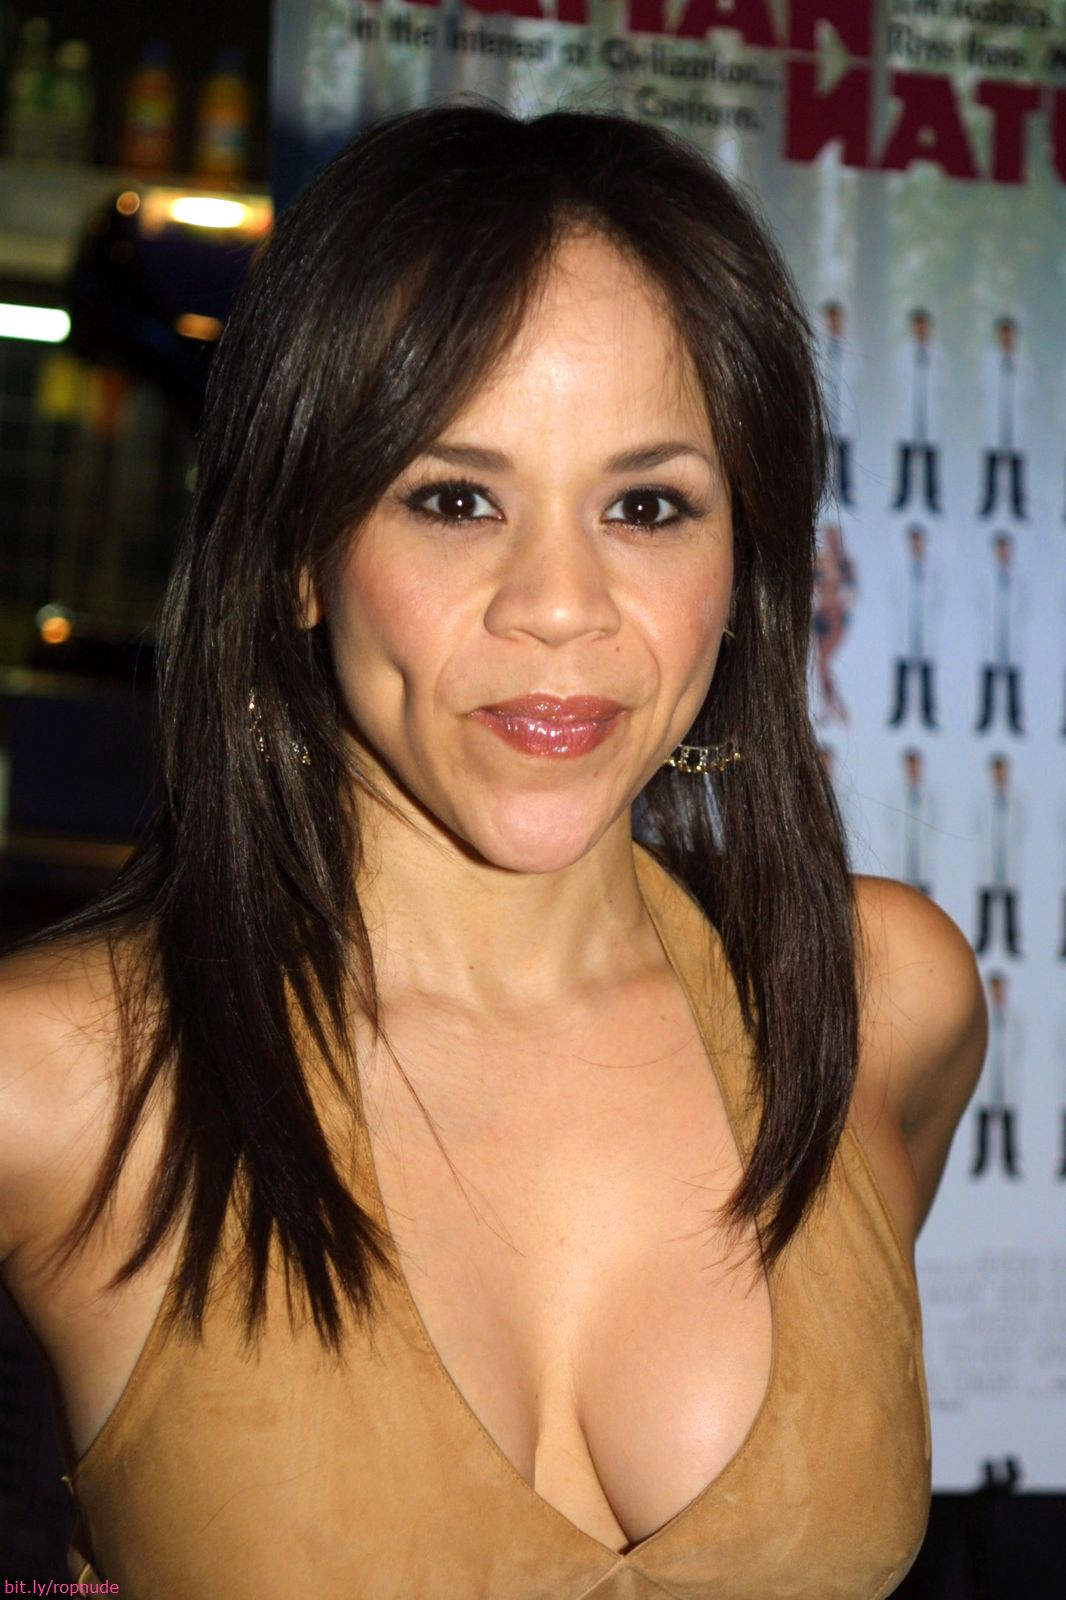 Remarkable, rather rosie perez nude videp sorry